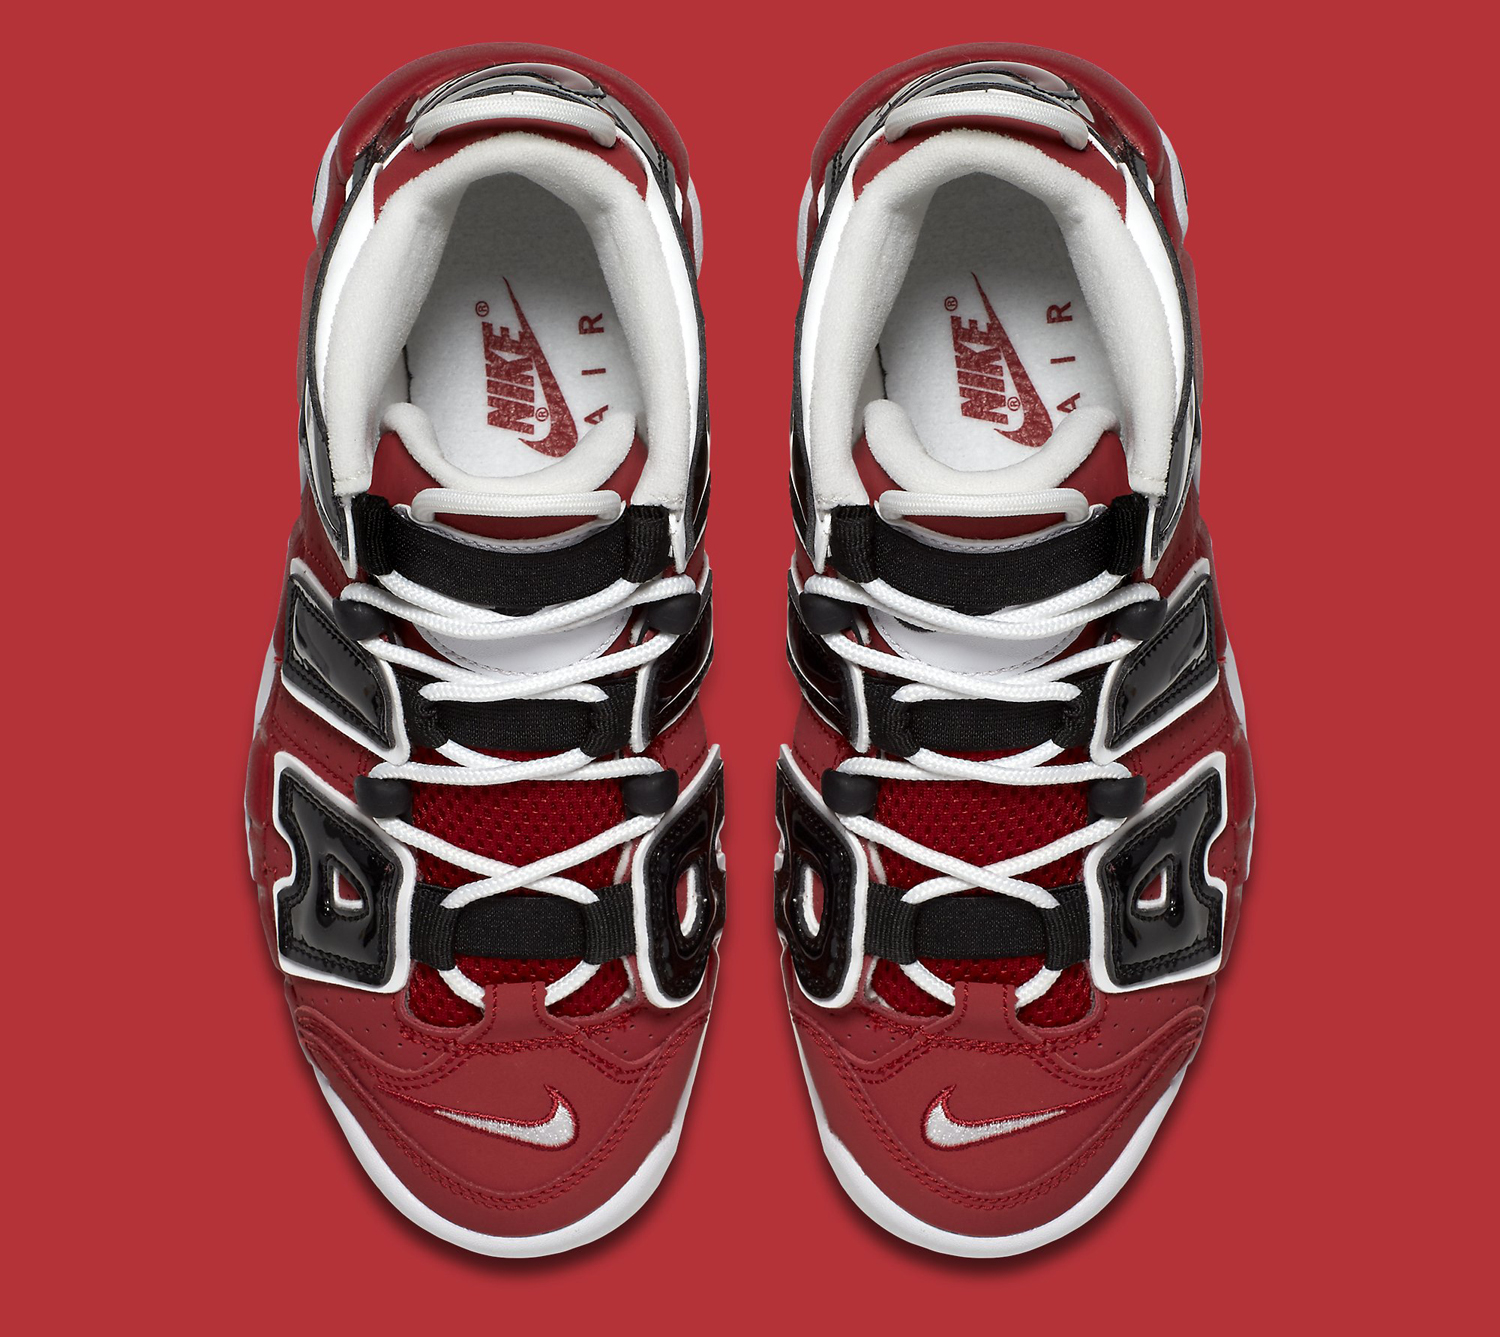 bcd6650b4e3 Nike Air More Uptempo Red White Black | Sole Collector